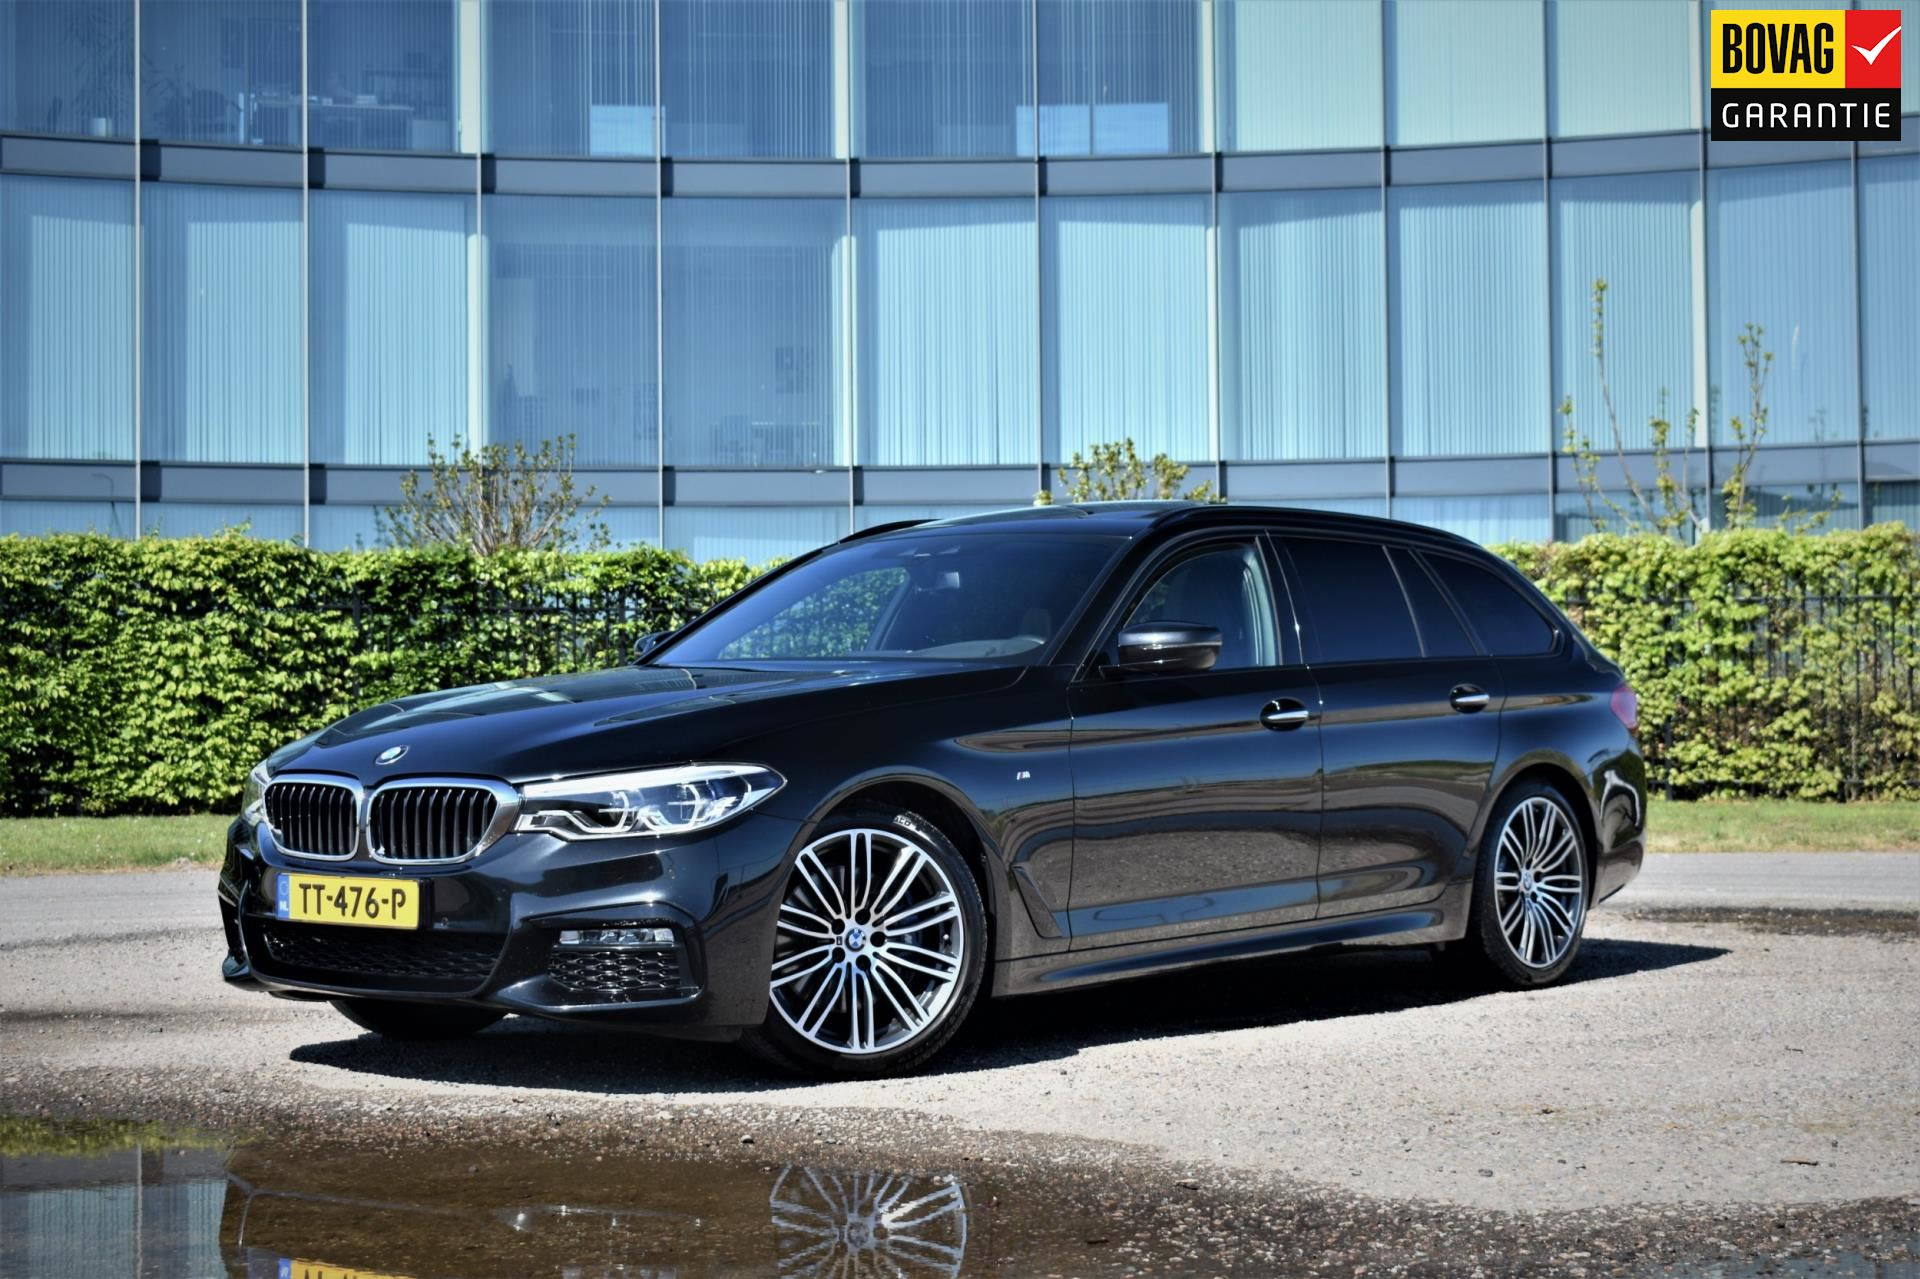 BMW 5-serie Touring occasion - Autobedrijf Hans Lammers